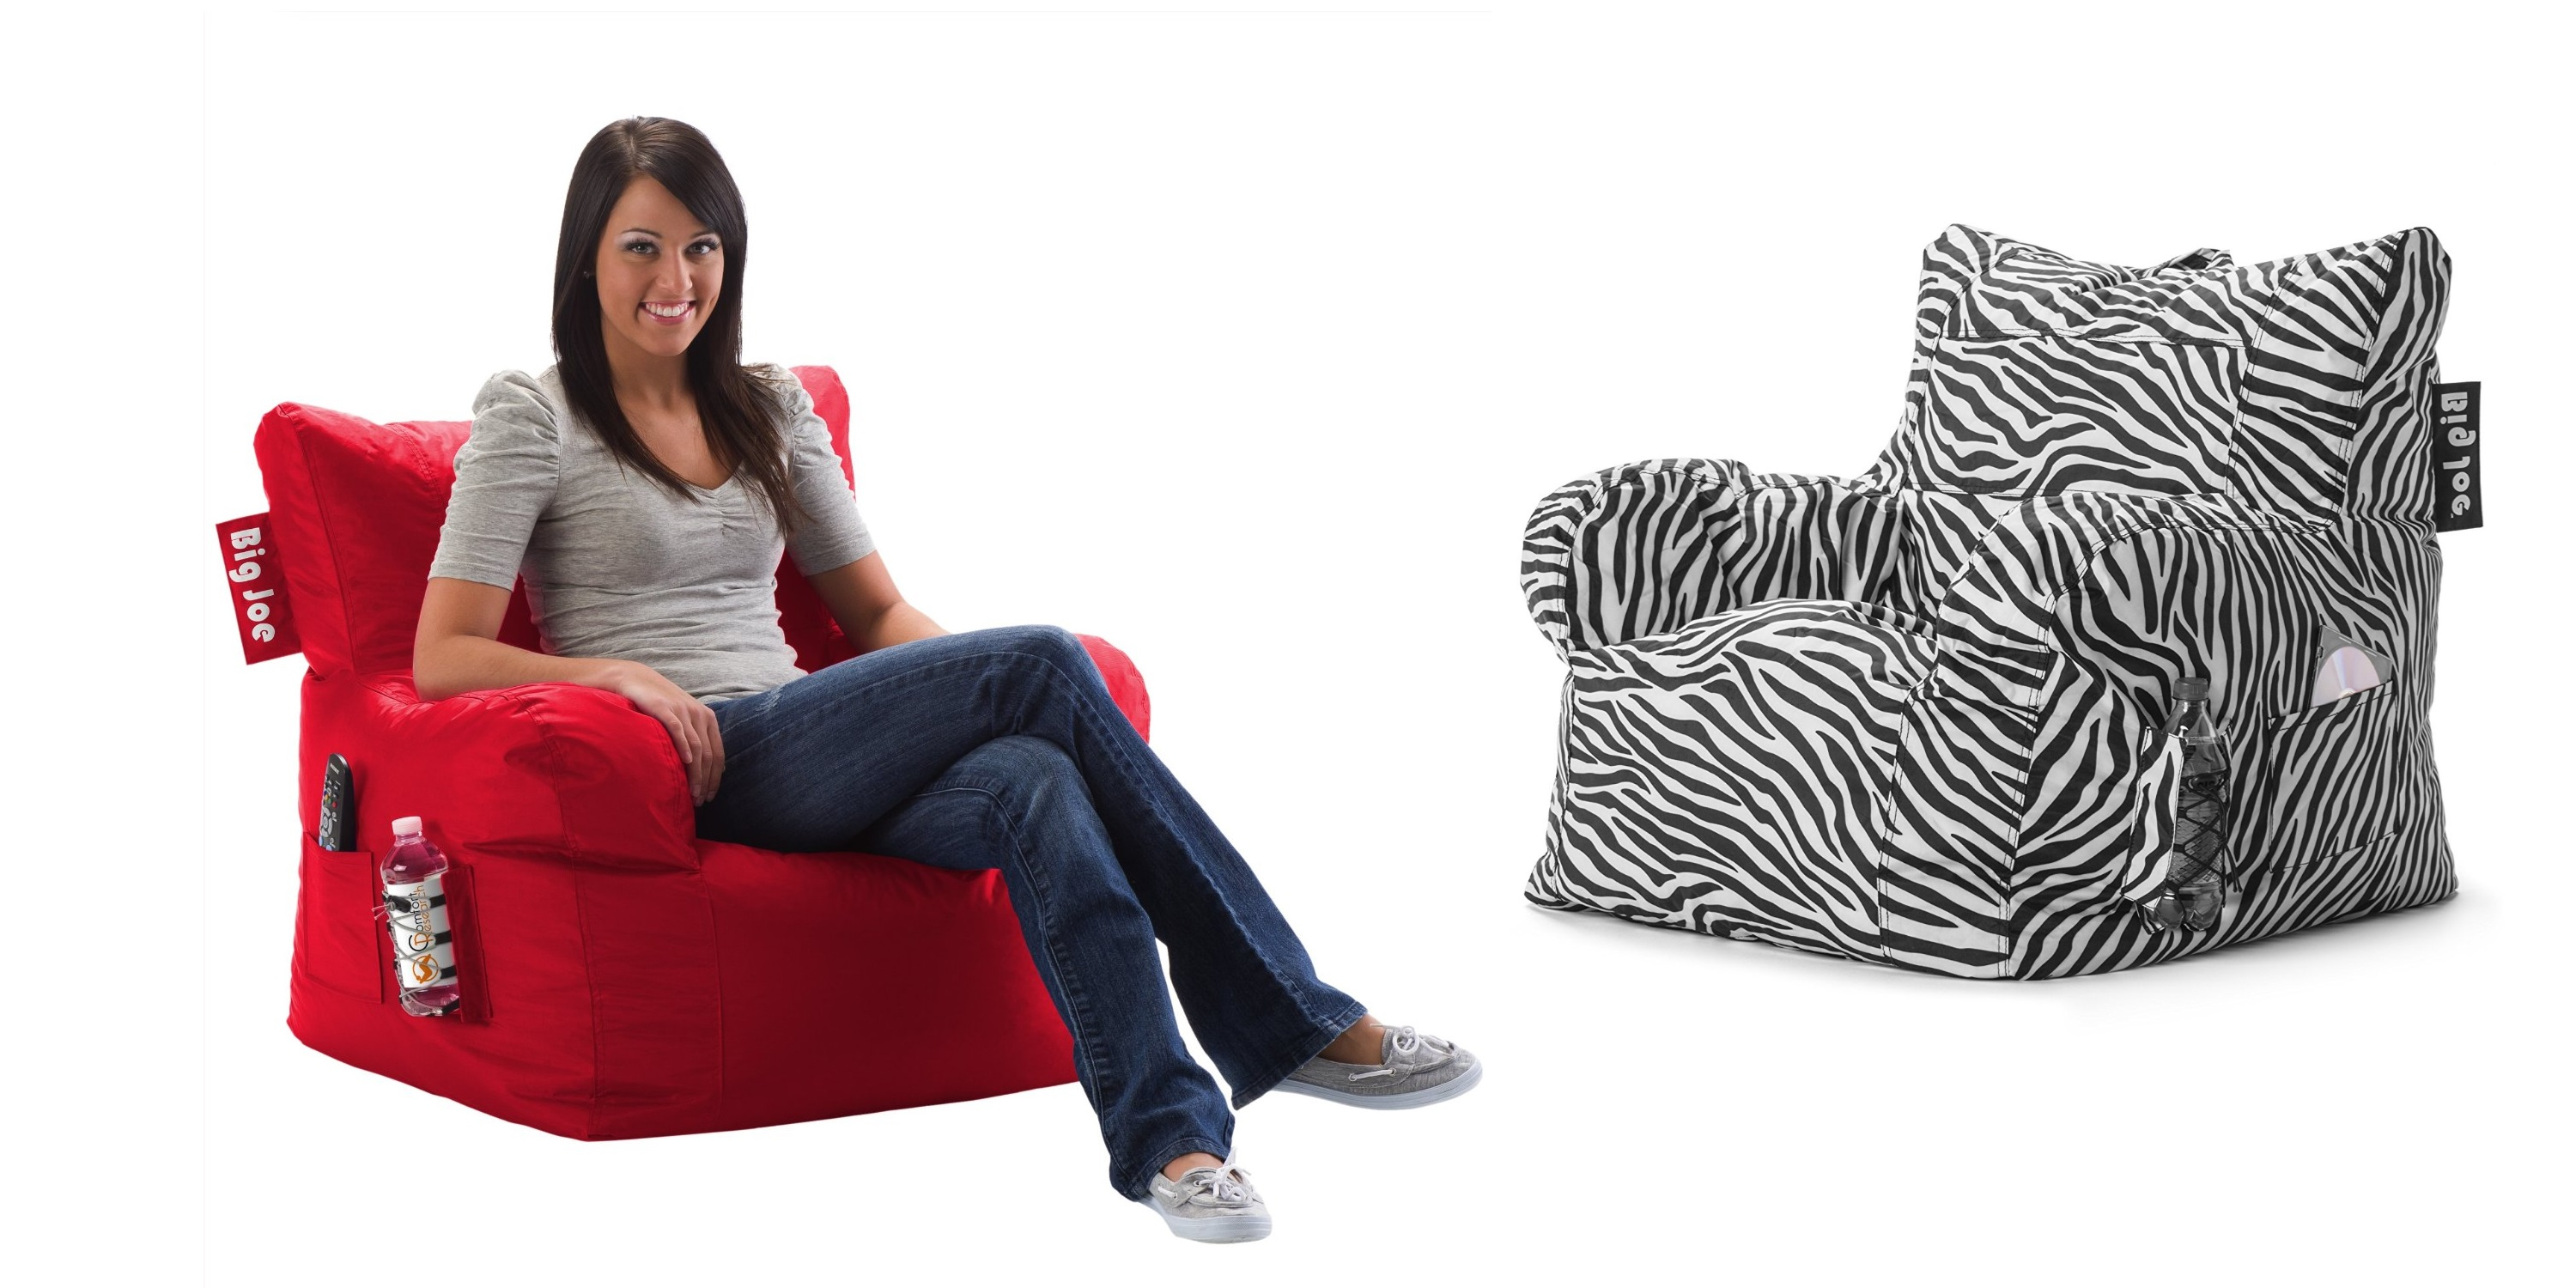 Big Joe Dorm Bean Bag Chair Only 24 88 Freebies2deals